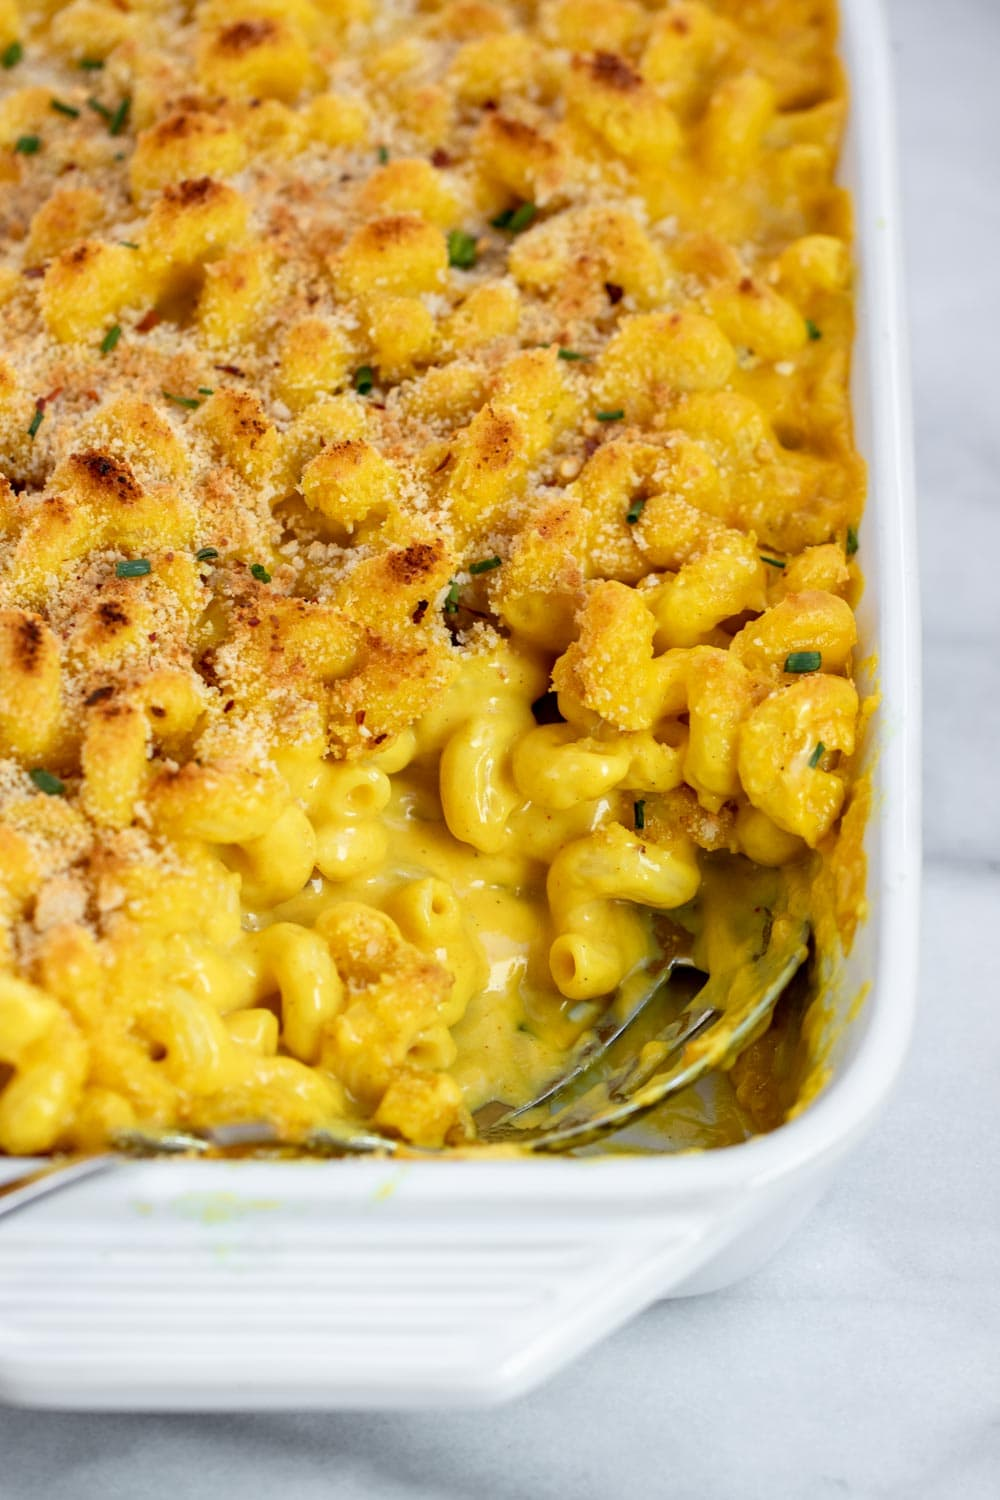 Vegan mac and cheese in a white baking dish.